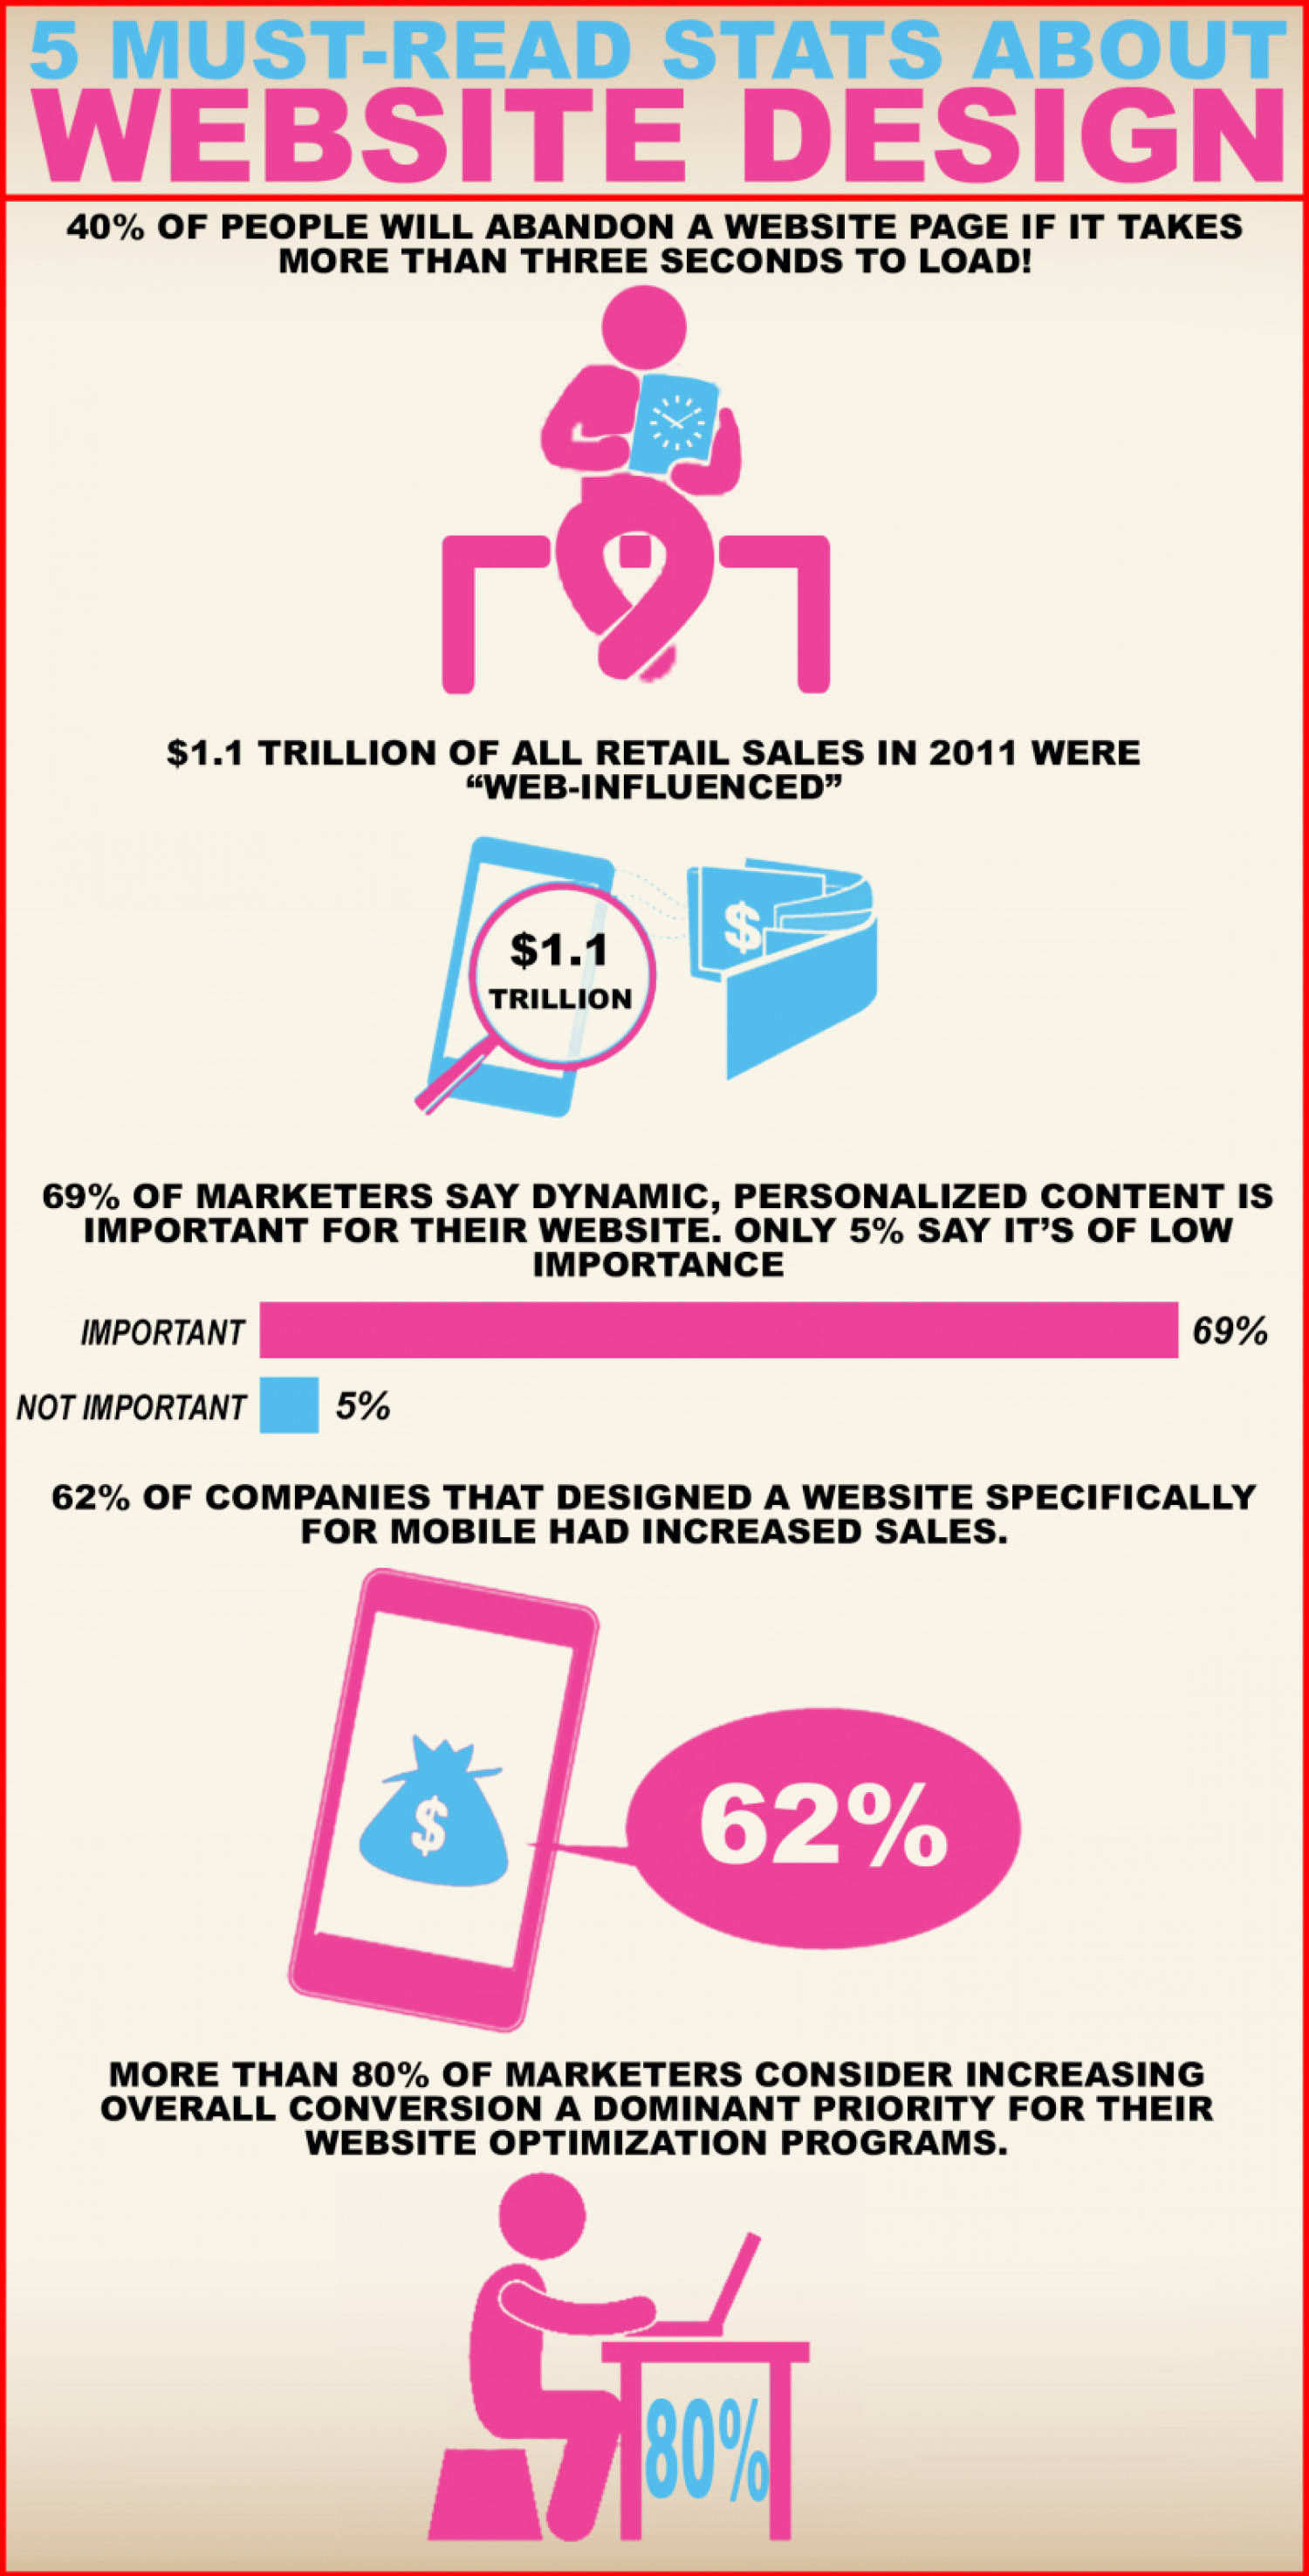 5 Must-Read Stats About Website Design Infographic